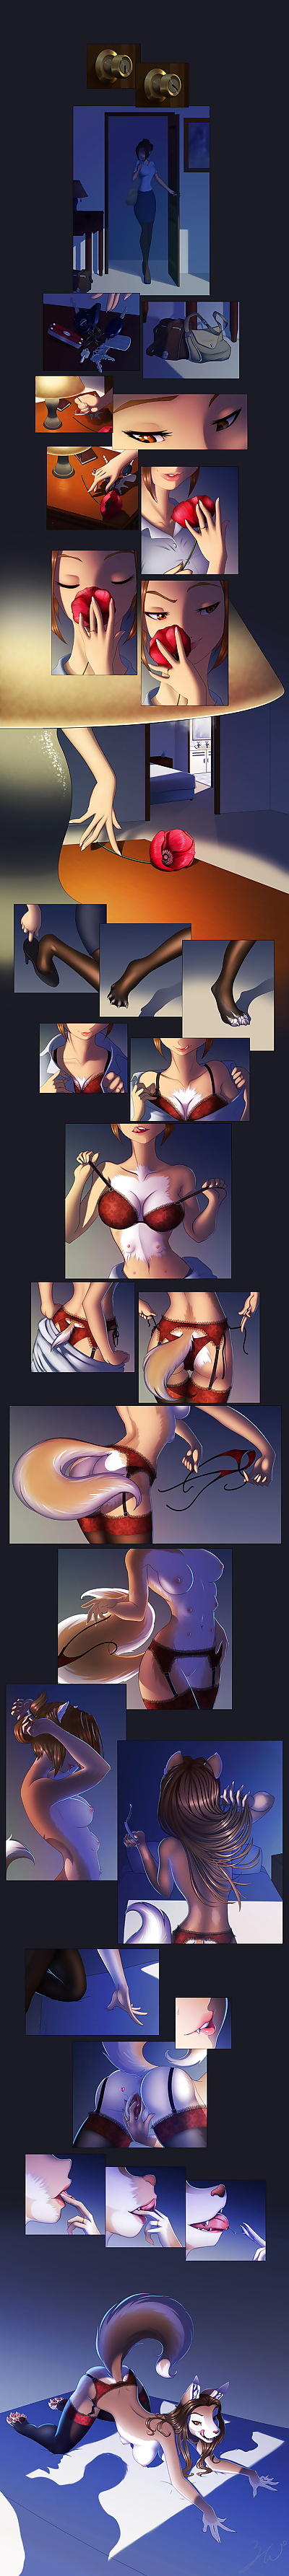 Anthro Hanging Breasts -..